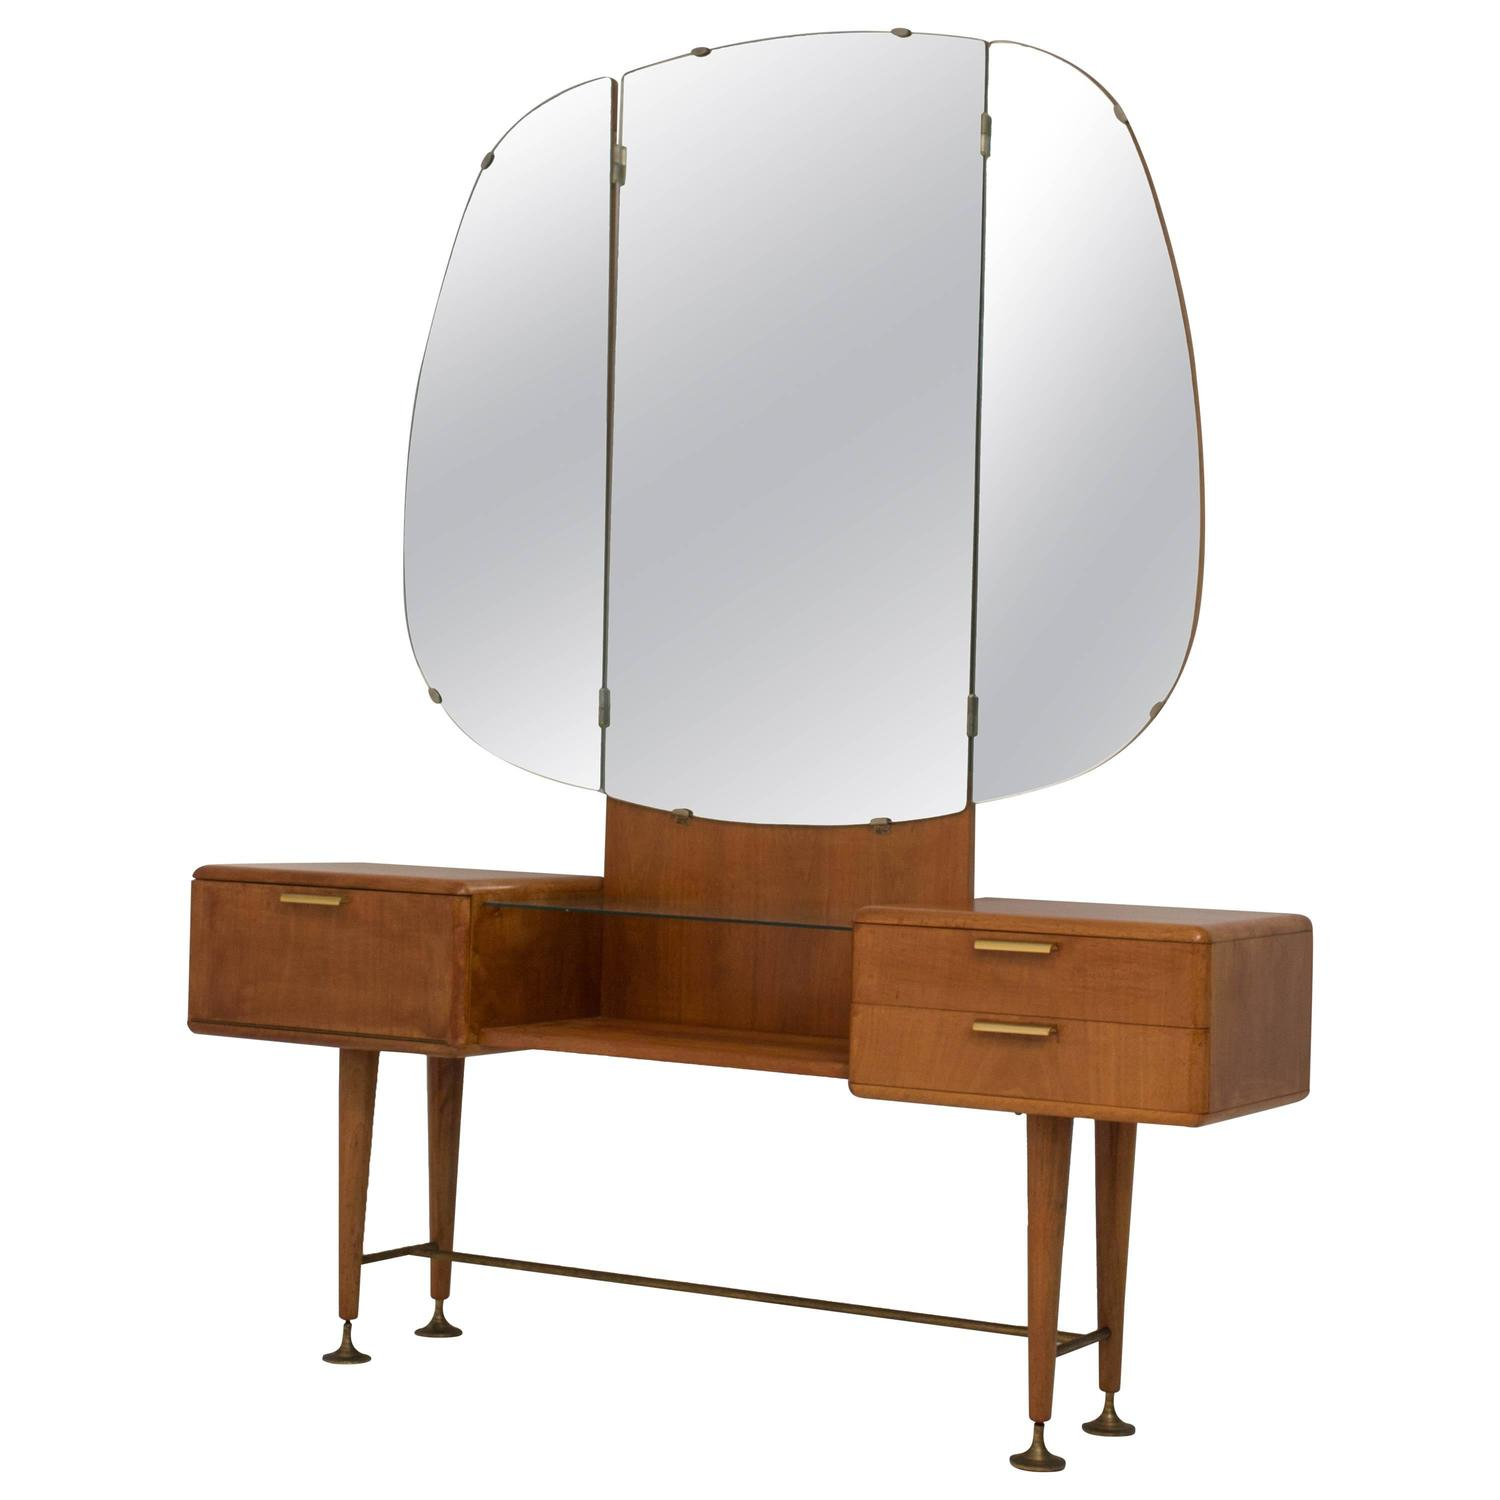 Modern Vanity Chair Rare Mid Century Modern Vanity Or Dressing Table By A A